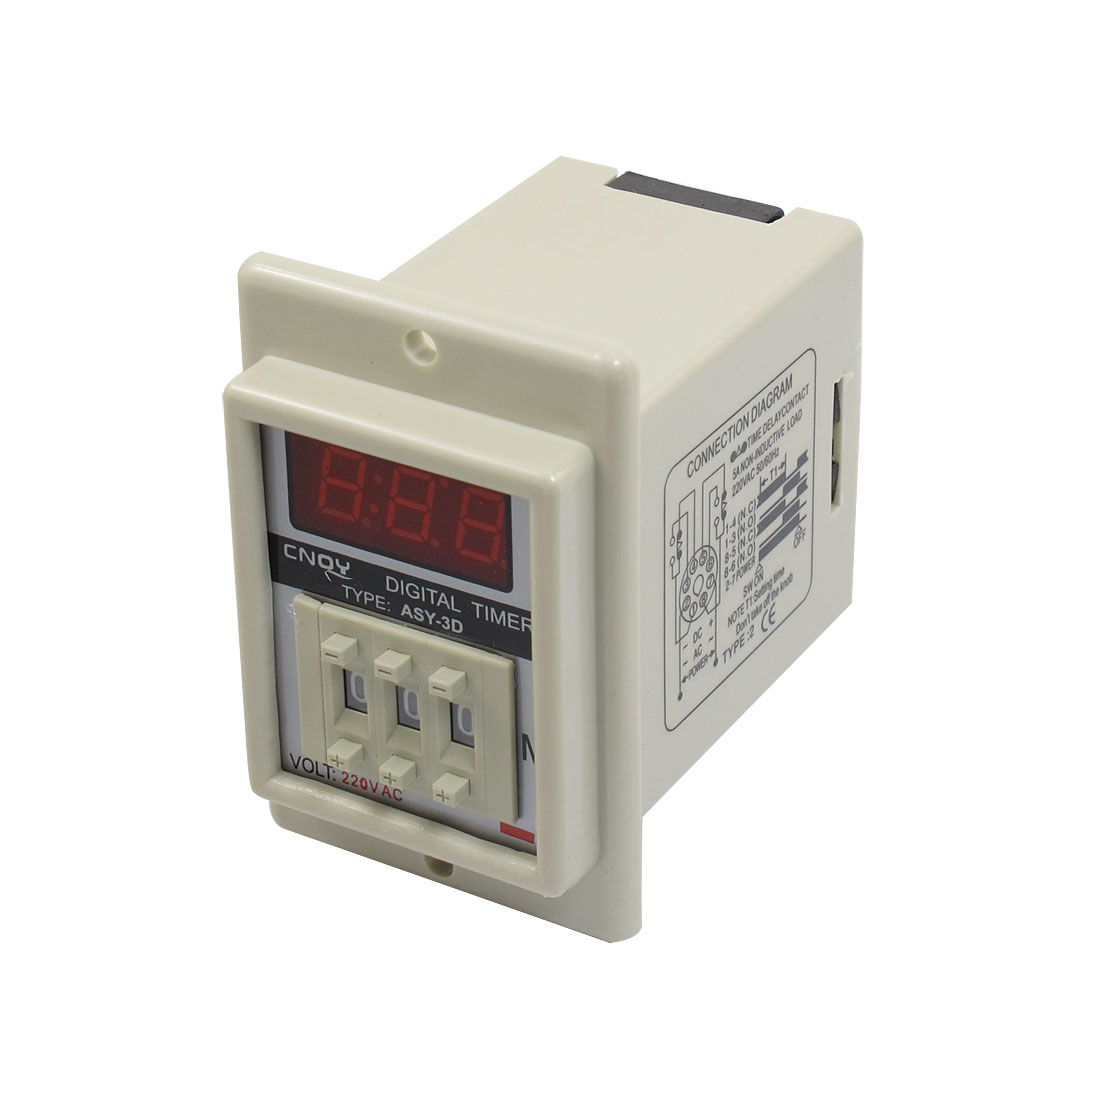 Panel Mount 0.1-99.9 Minute White Digital Timer Time Delay Relay AC 220V ASY-3D